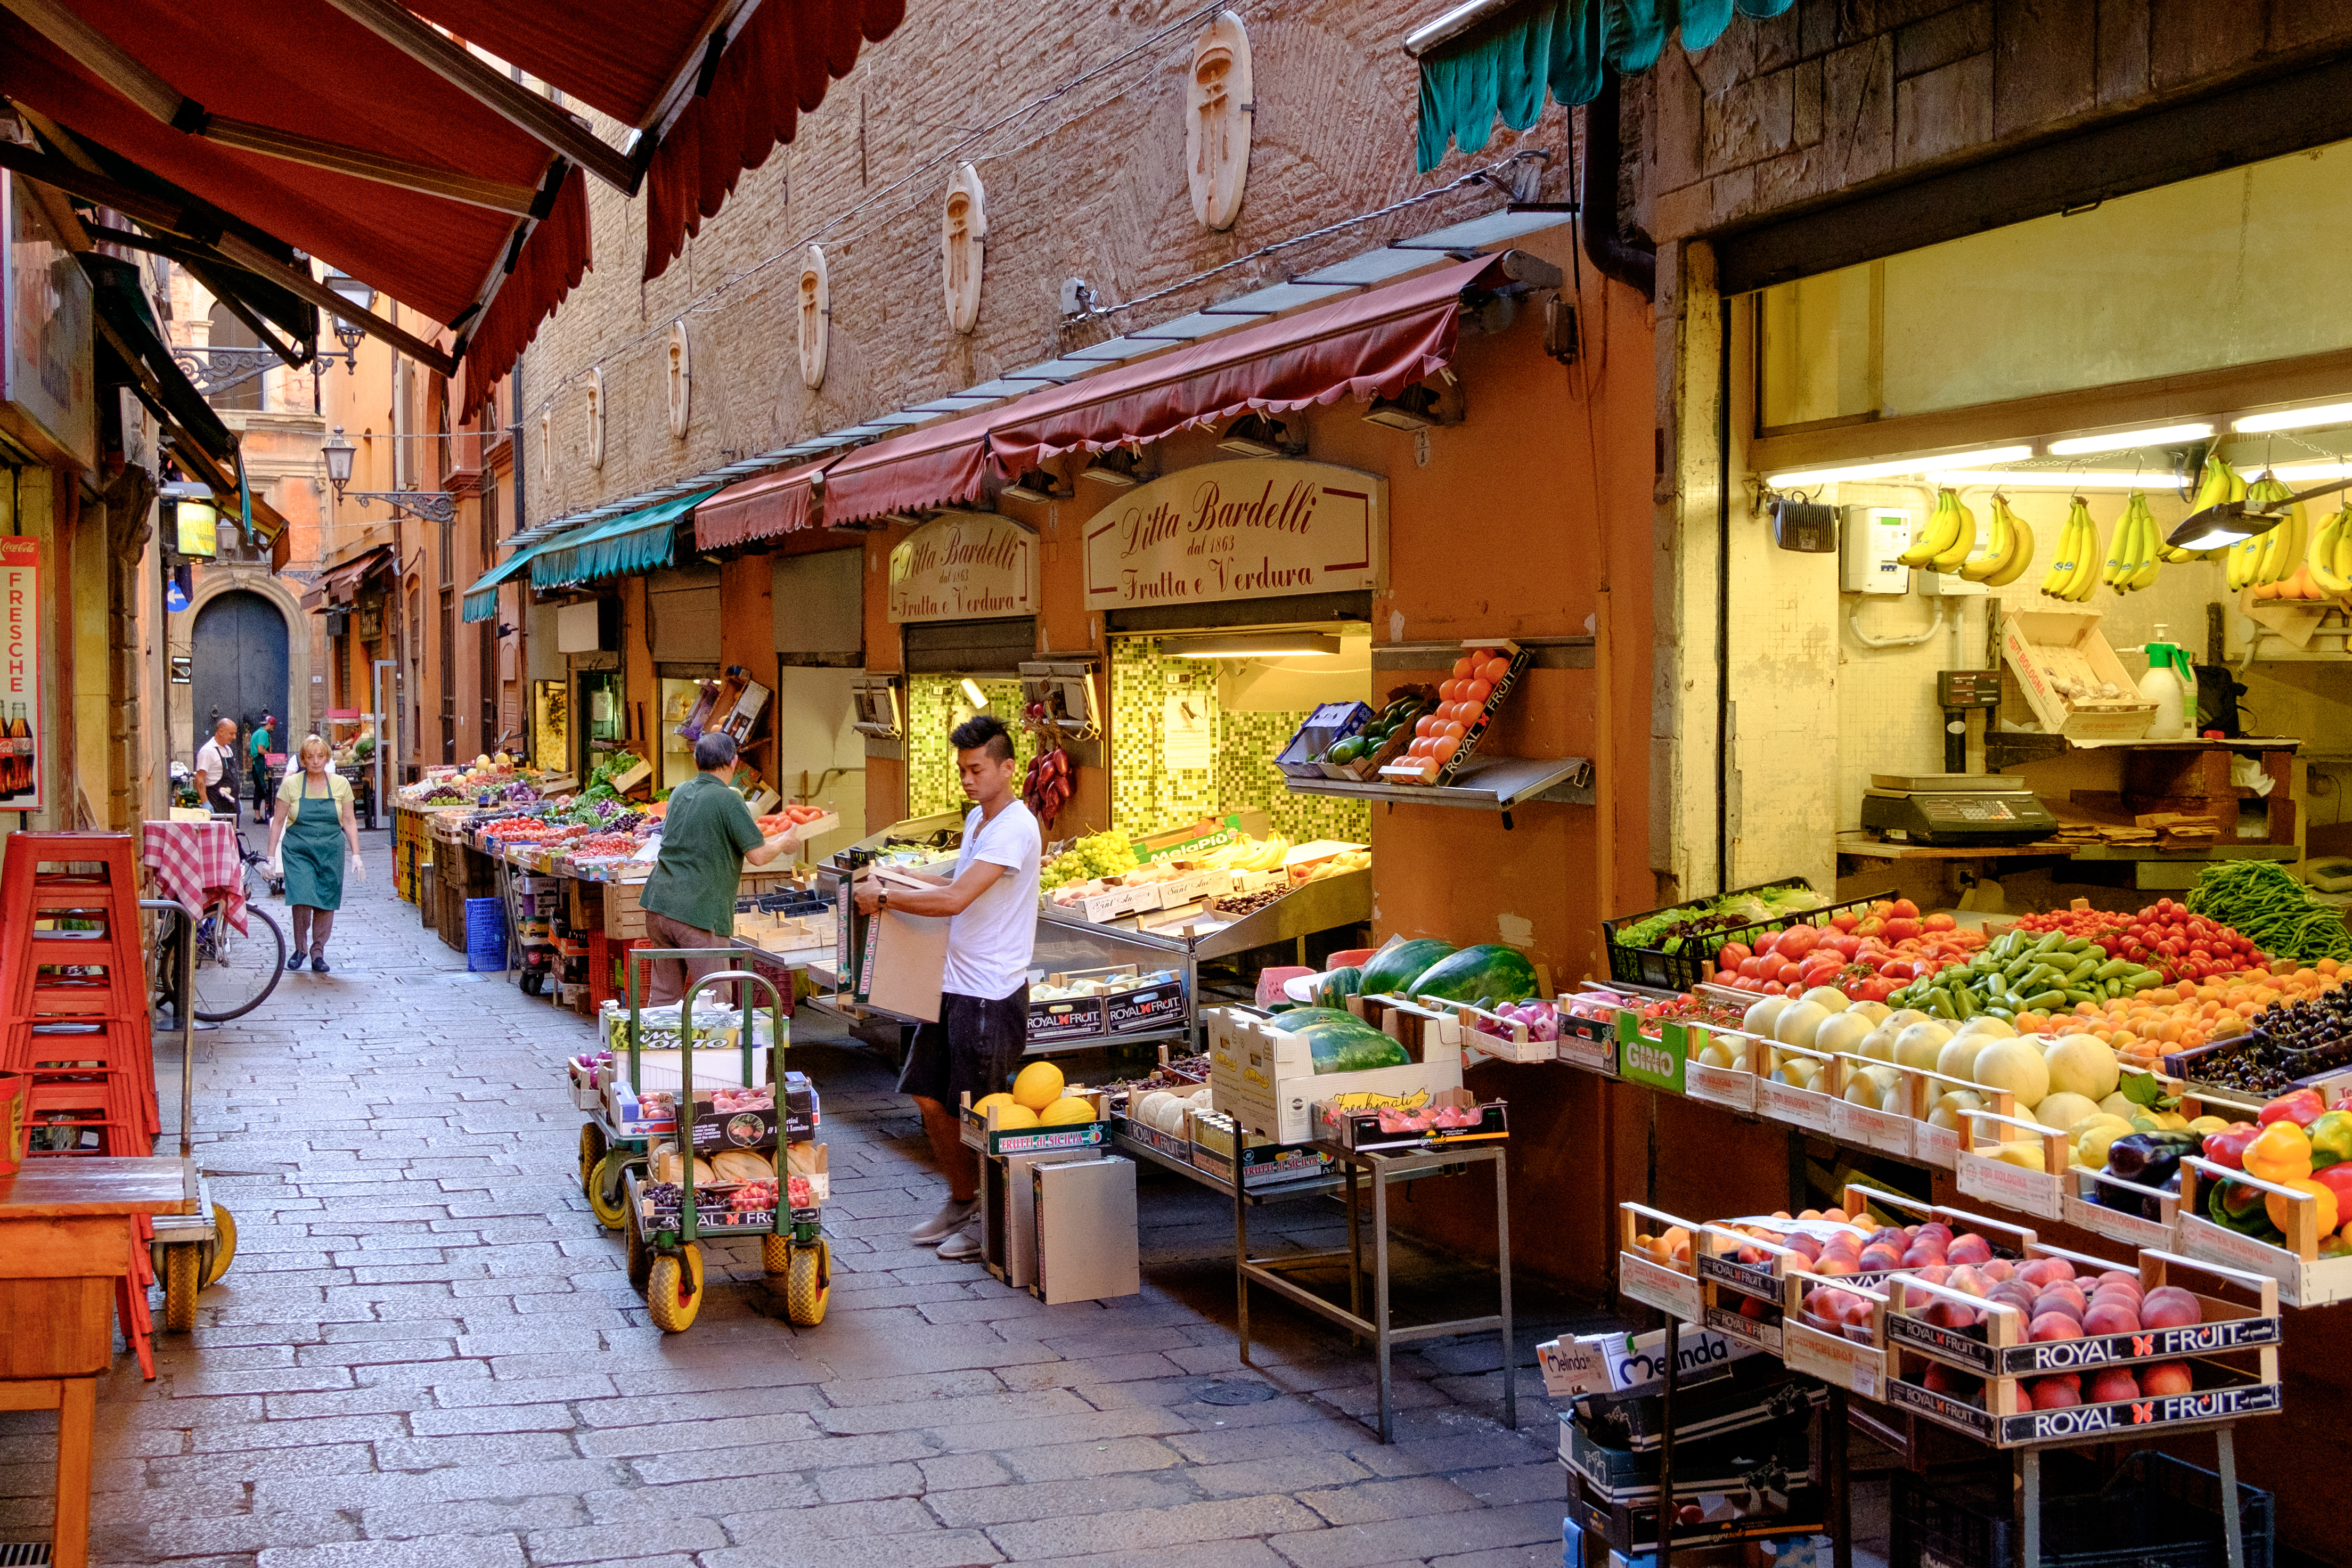 Characteristic food shops in the historic center of Bologna